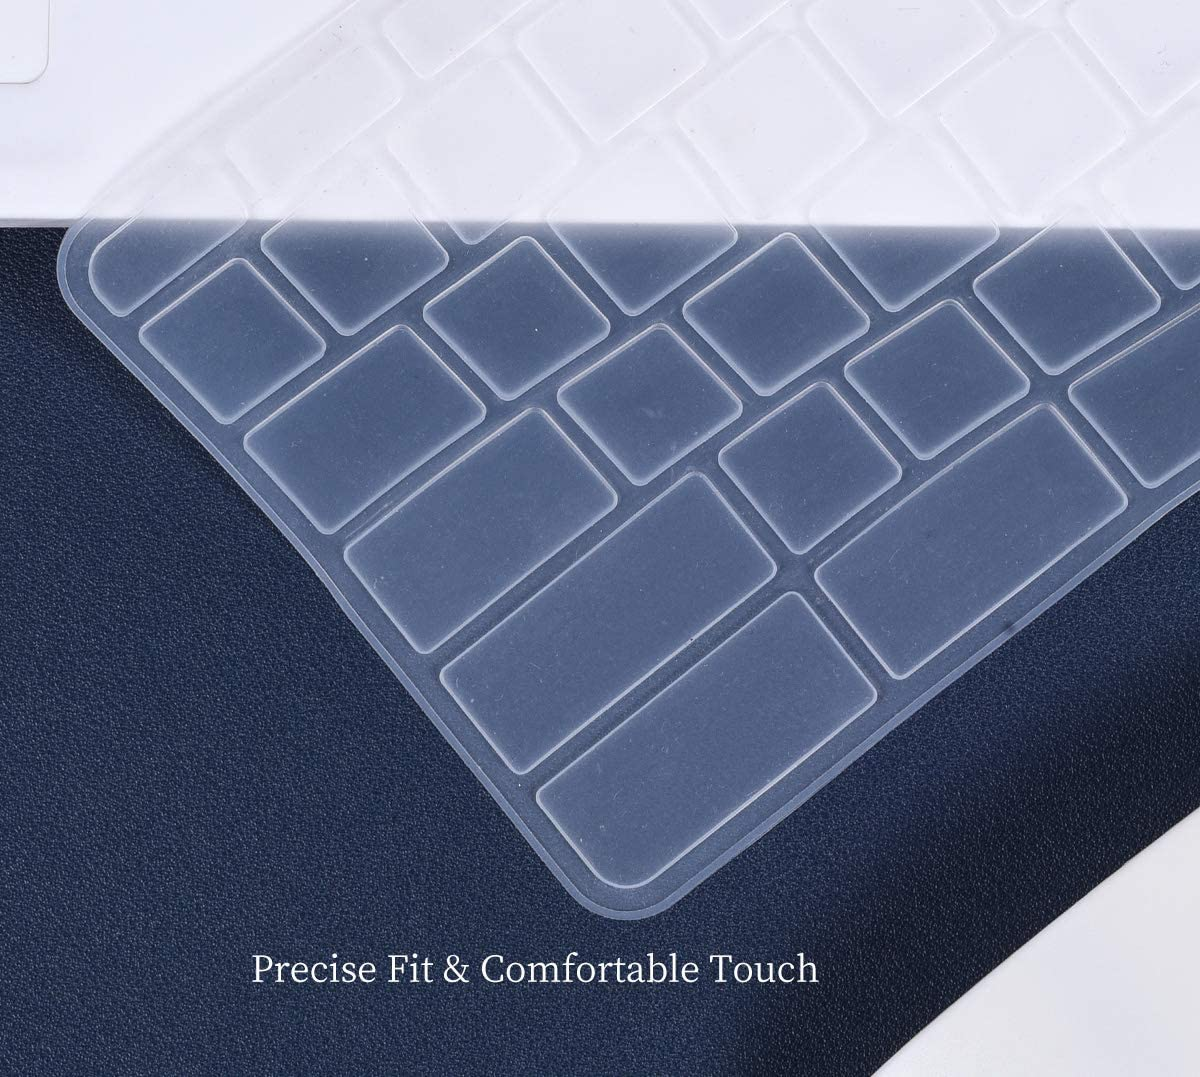 13.3 Chromebook R 13 CB5-312T //Chromebook 15 CB3-531 Chromebook R 11 CB5-132T Chromebook 11 CB3-131 CB3-132 Clear Silicone Keyboard Cover for 2019//2018//2017 Newest Acer Premium R11 11.6